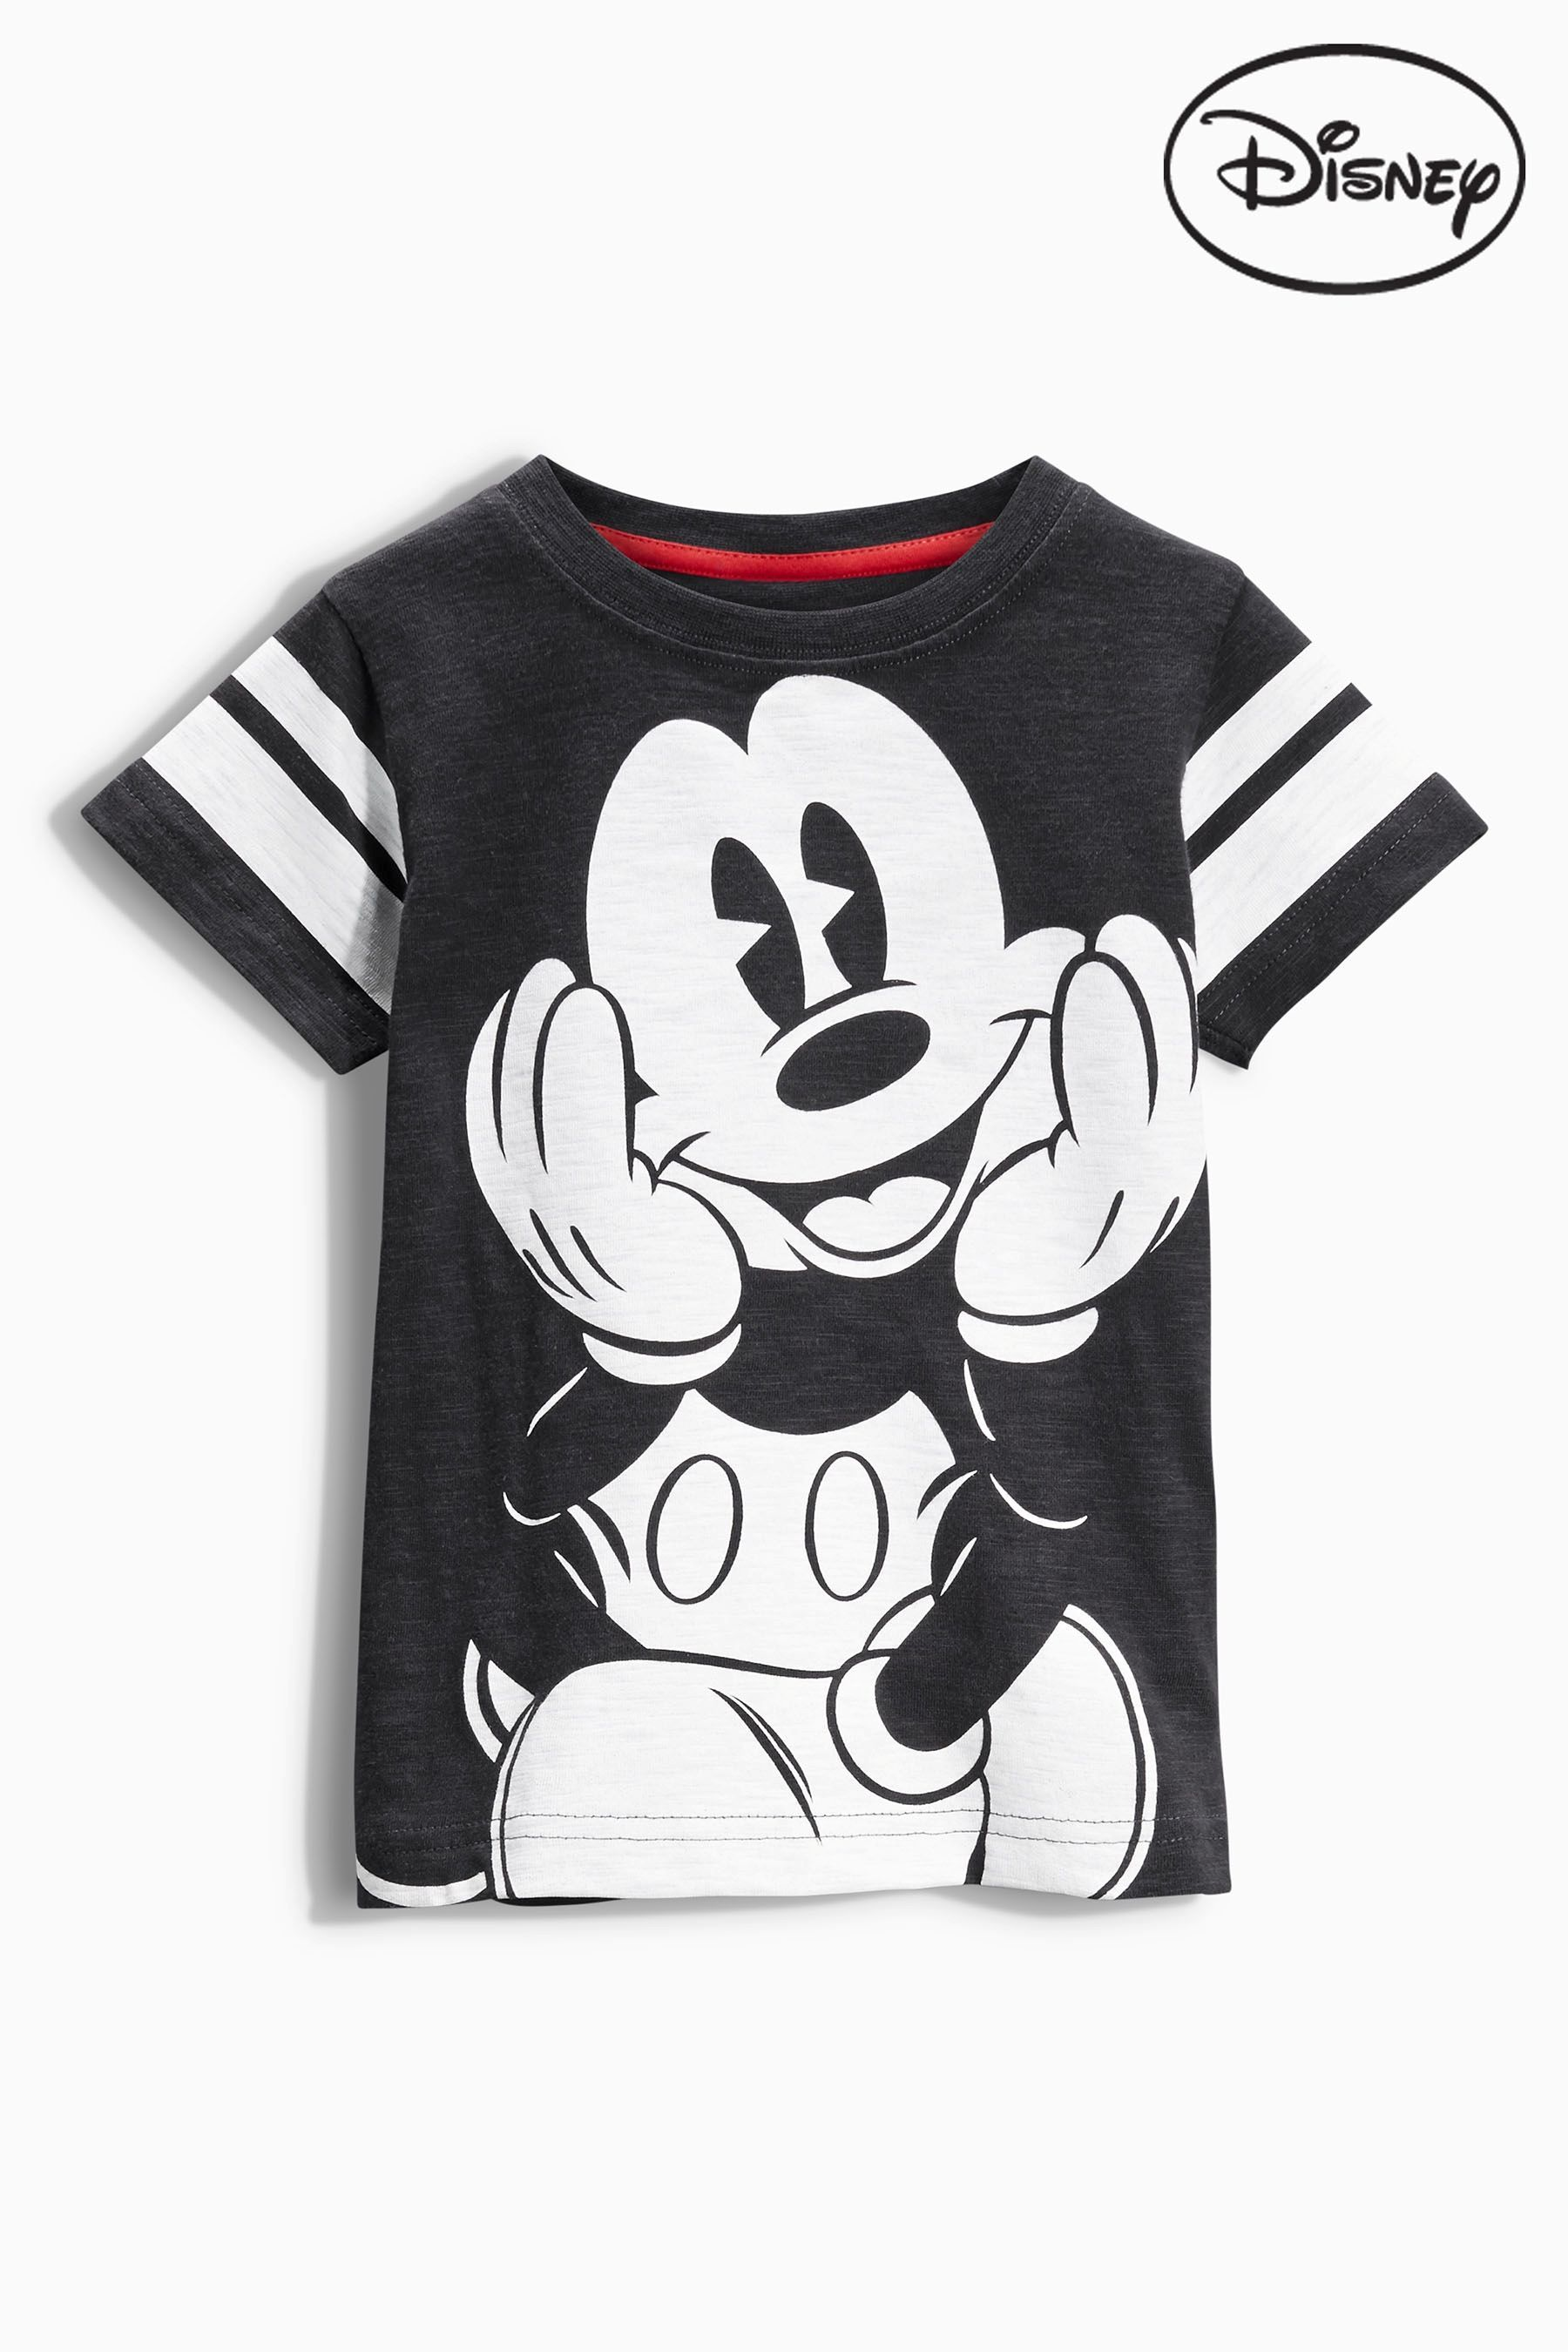 Design t shirt cheap uk - Buy Black Mickey Mouse Short Sleeve T Shirt From The Next Uk Online Shop